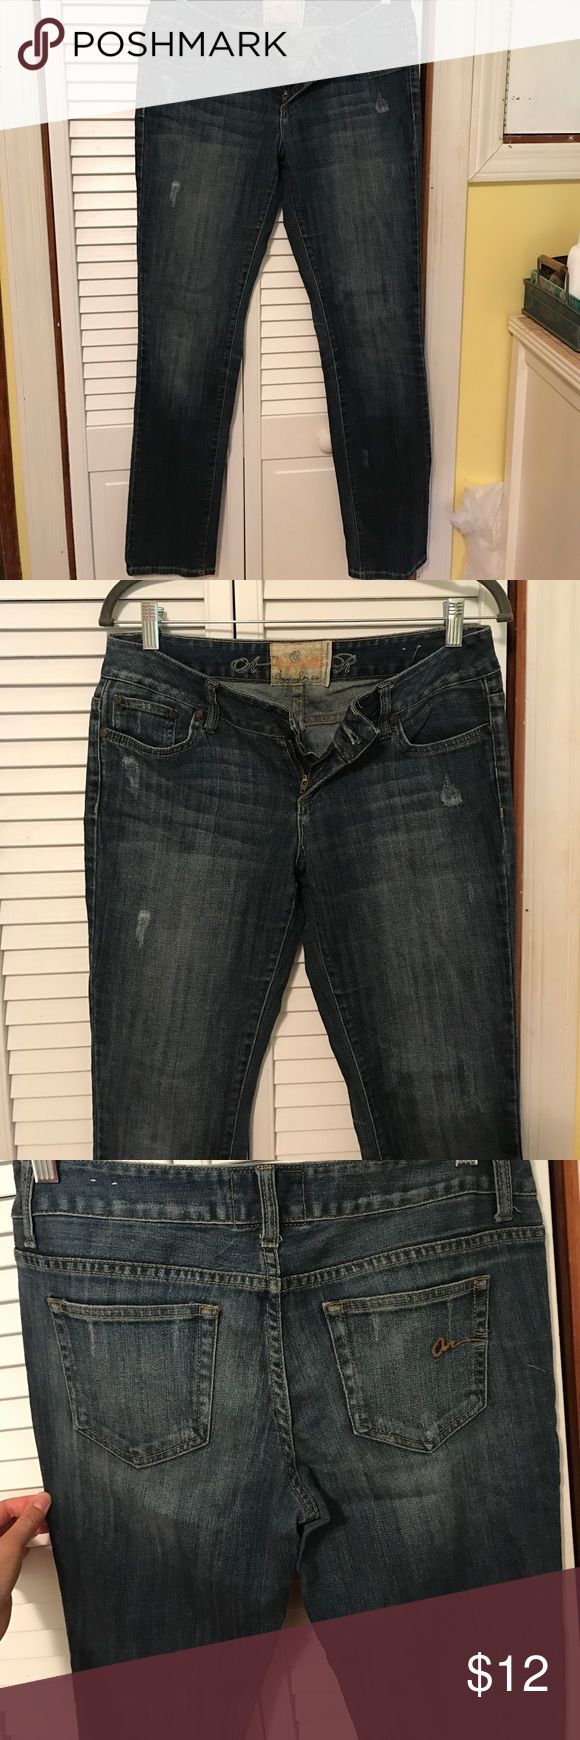 "American Rag jeans Medium wash jeans with fading and distressing in places, cute and comfortable, fits more like straight leg not super skinny jeans despite ""premium skinny"" label American Rag Jeans Skinny"